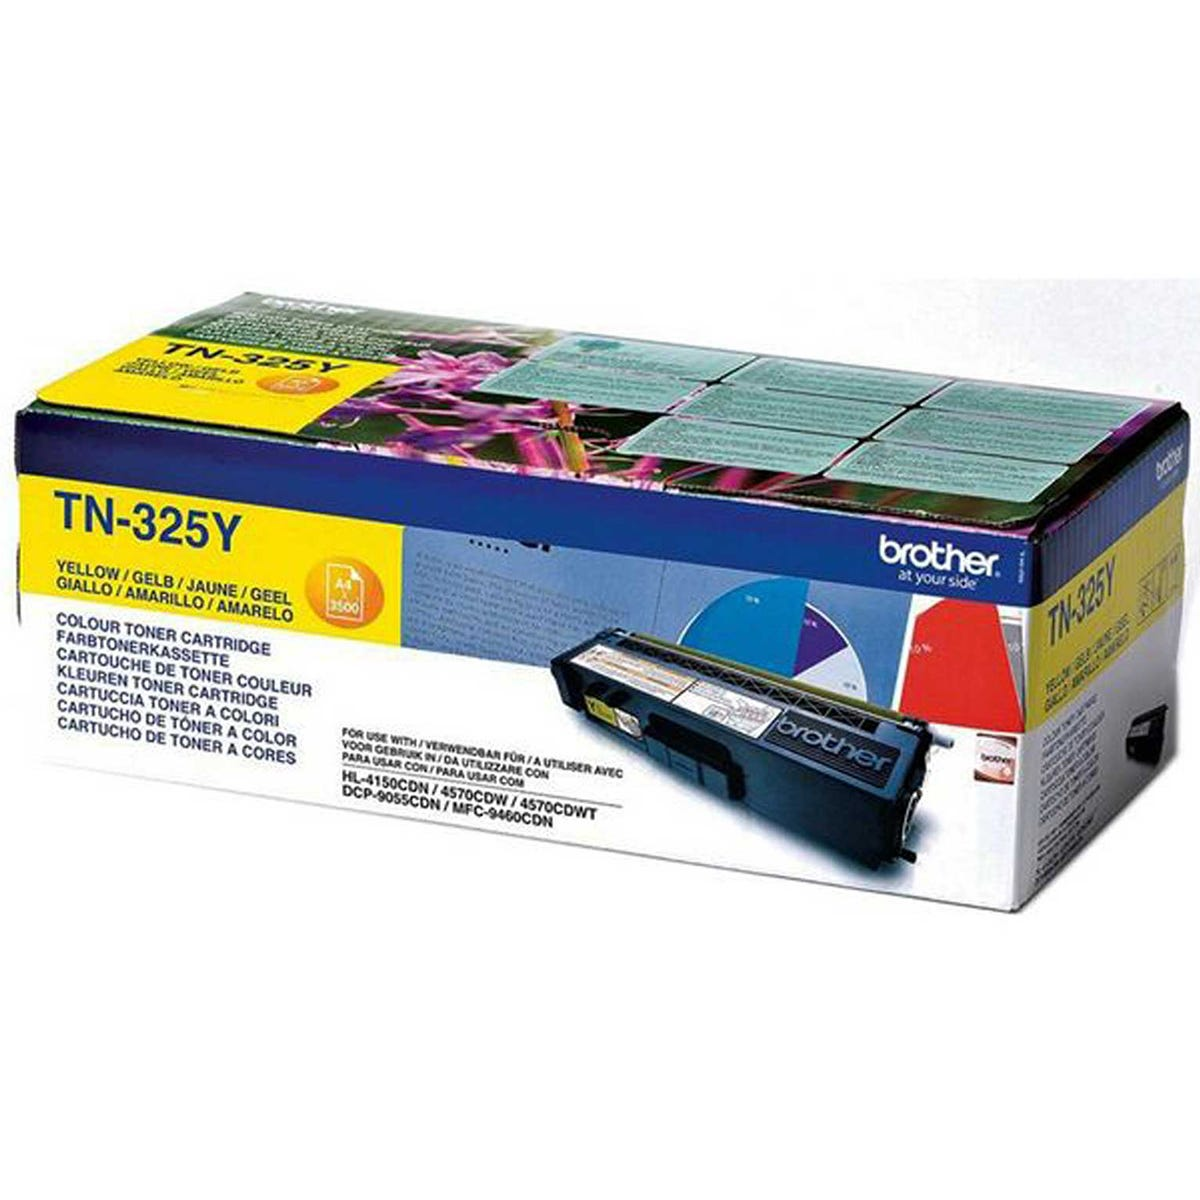 Brother TN325Y High Yield Colour Laser Ink Toner Cartridge, Yellow